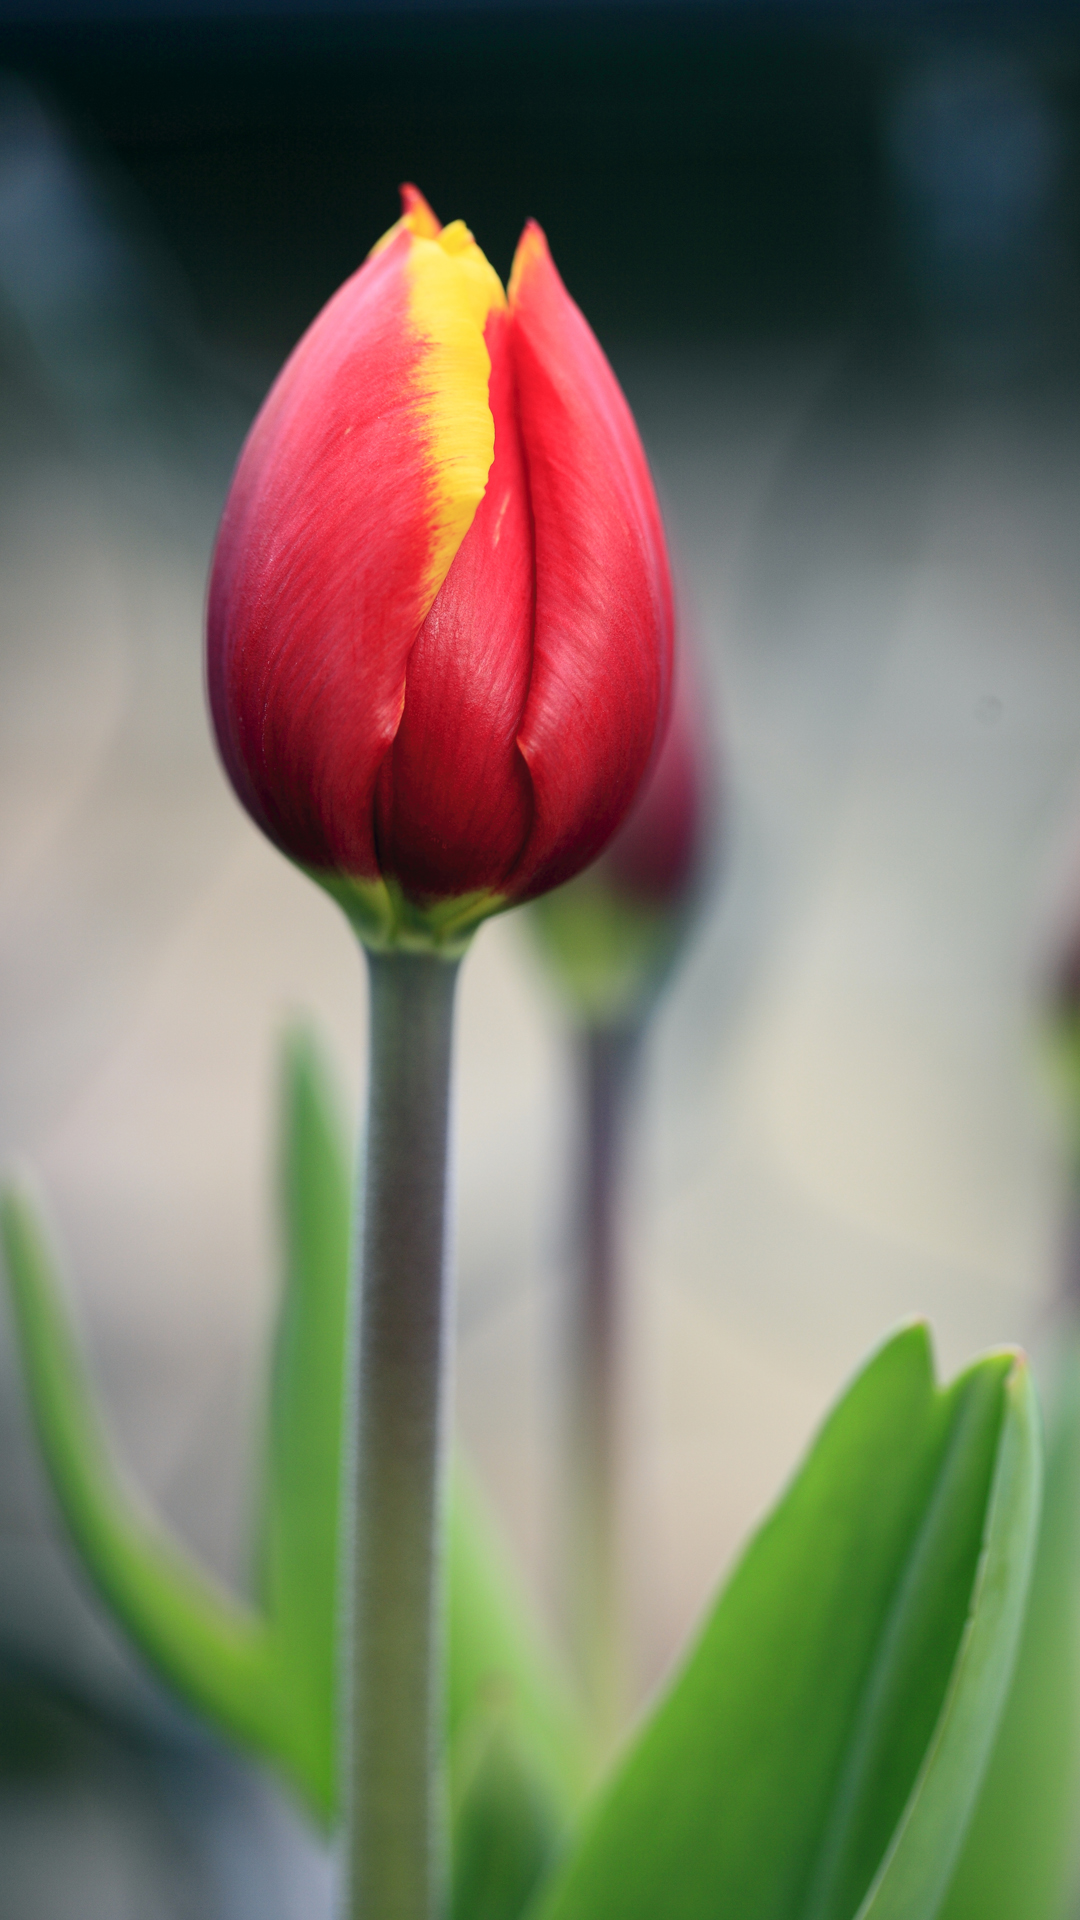 Htc One M8 Wallpaper Hd Red Tulip Best Htc One Wallpapers Free And Easy To Download